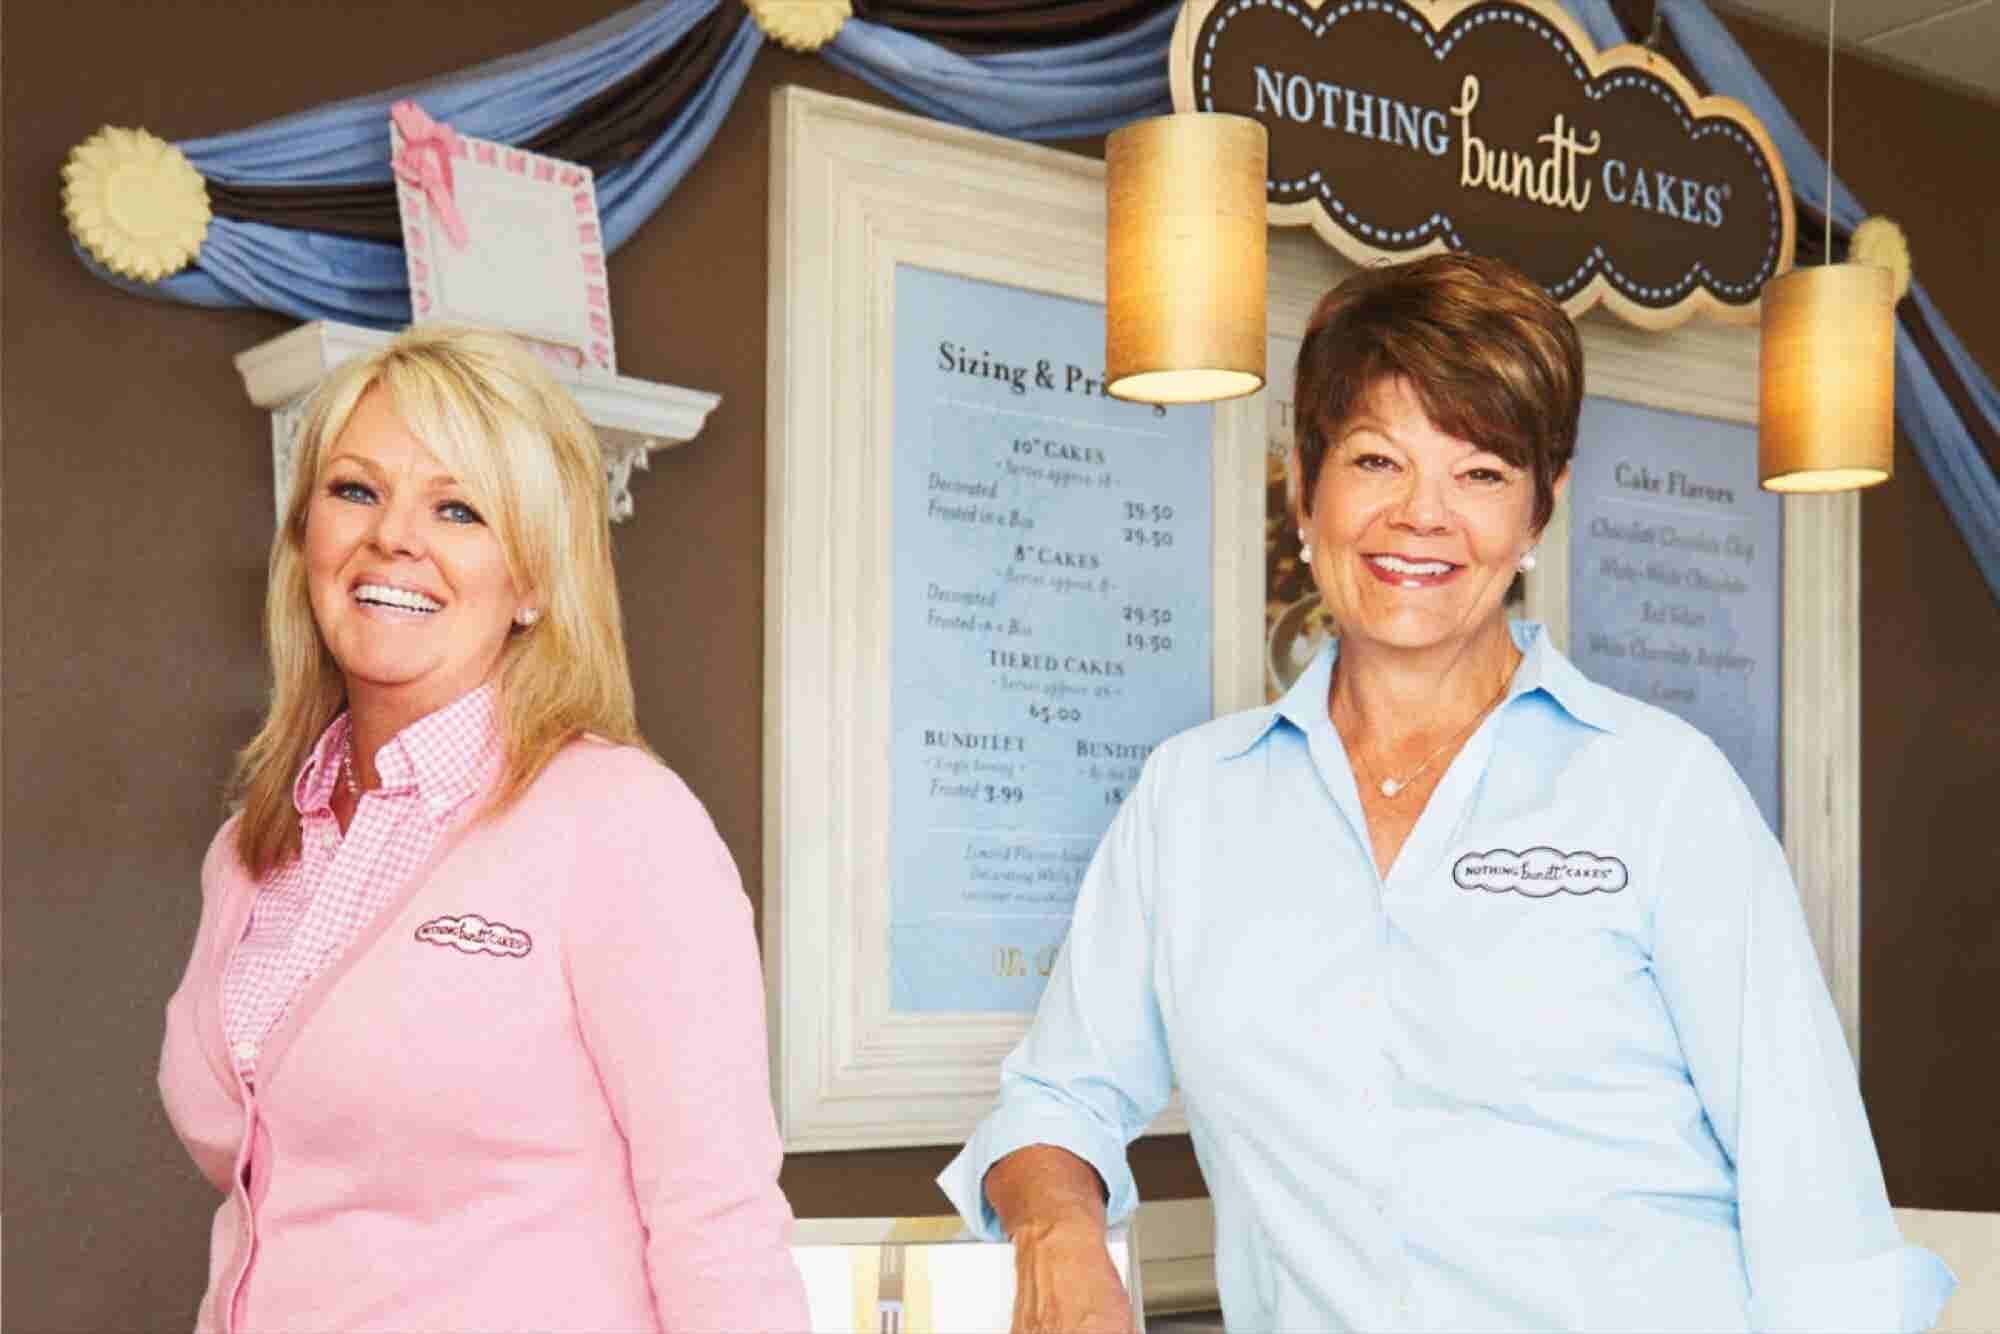 The Friends Turning Bundt Cake into Big Business